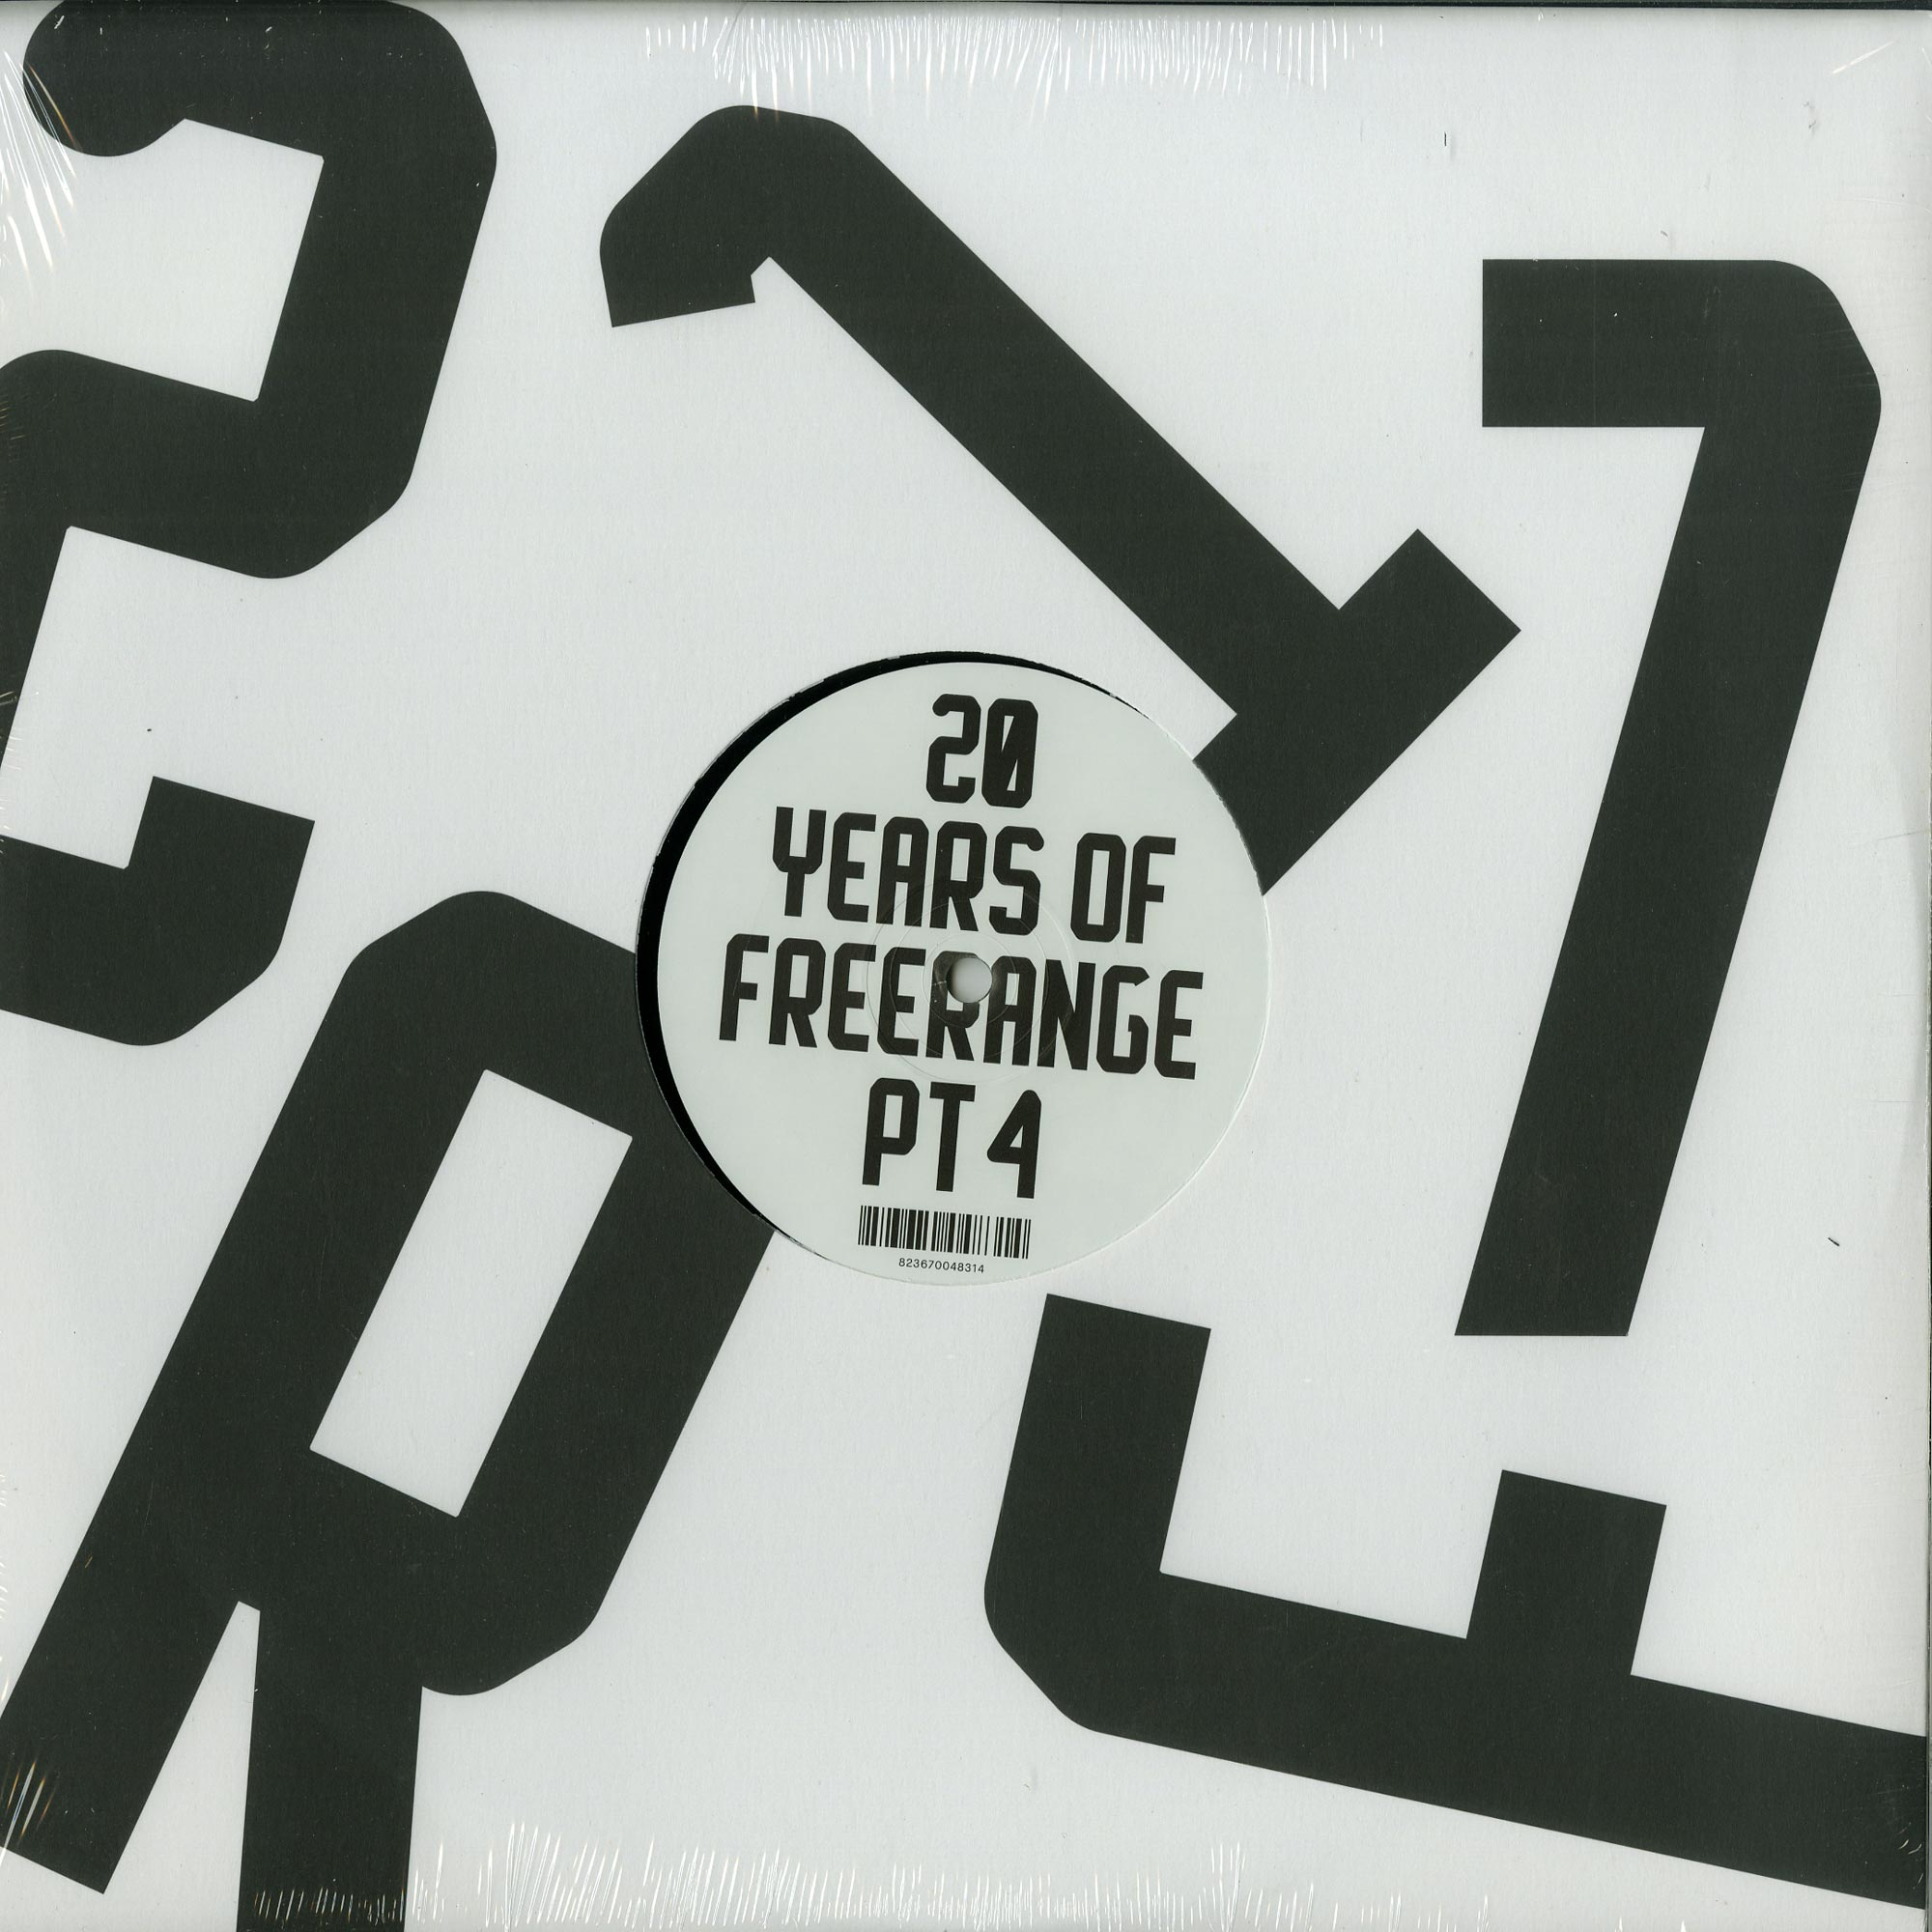 Milton Jackson, Kito Jempere, Pittsburgh Track Authority, Kuniyuki - 20 YEARS OF FREERANGE